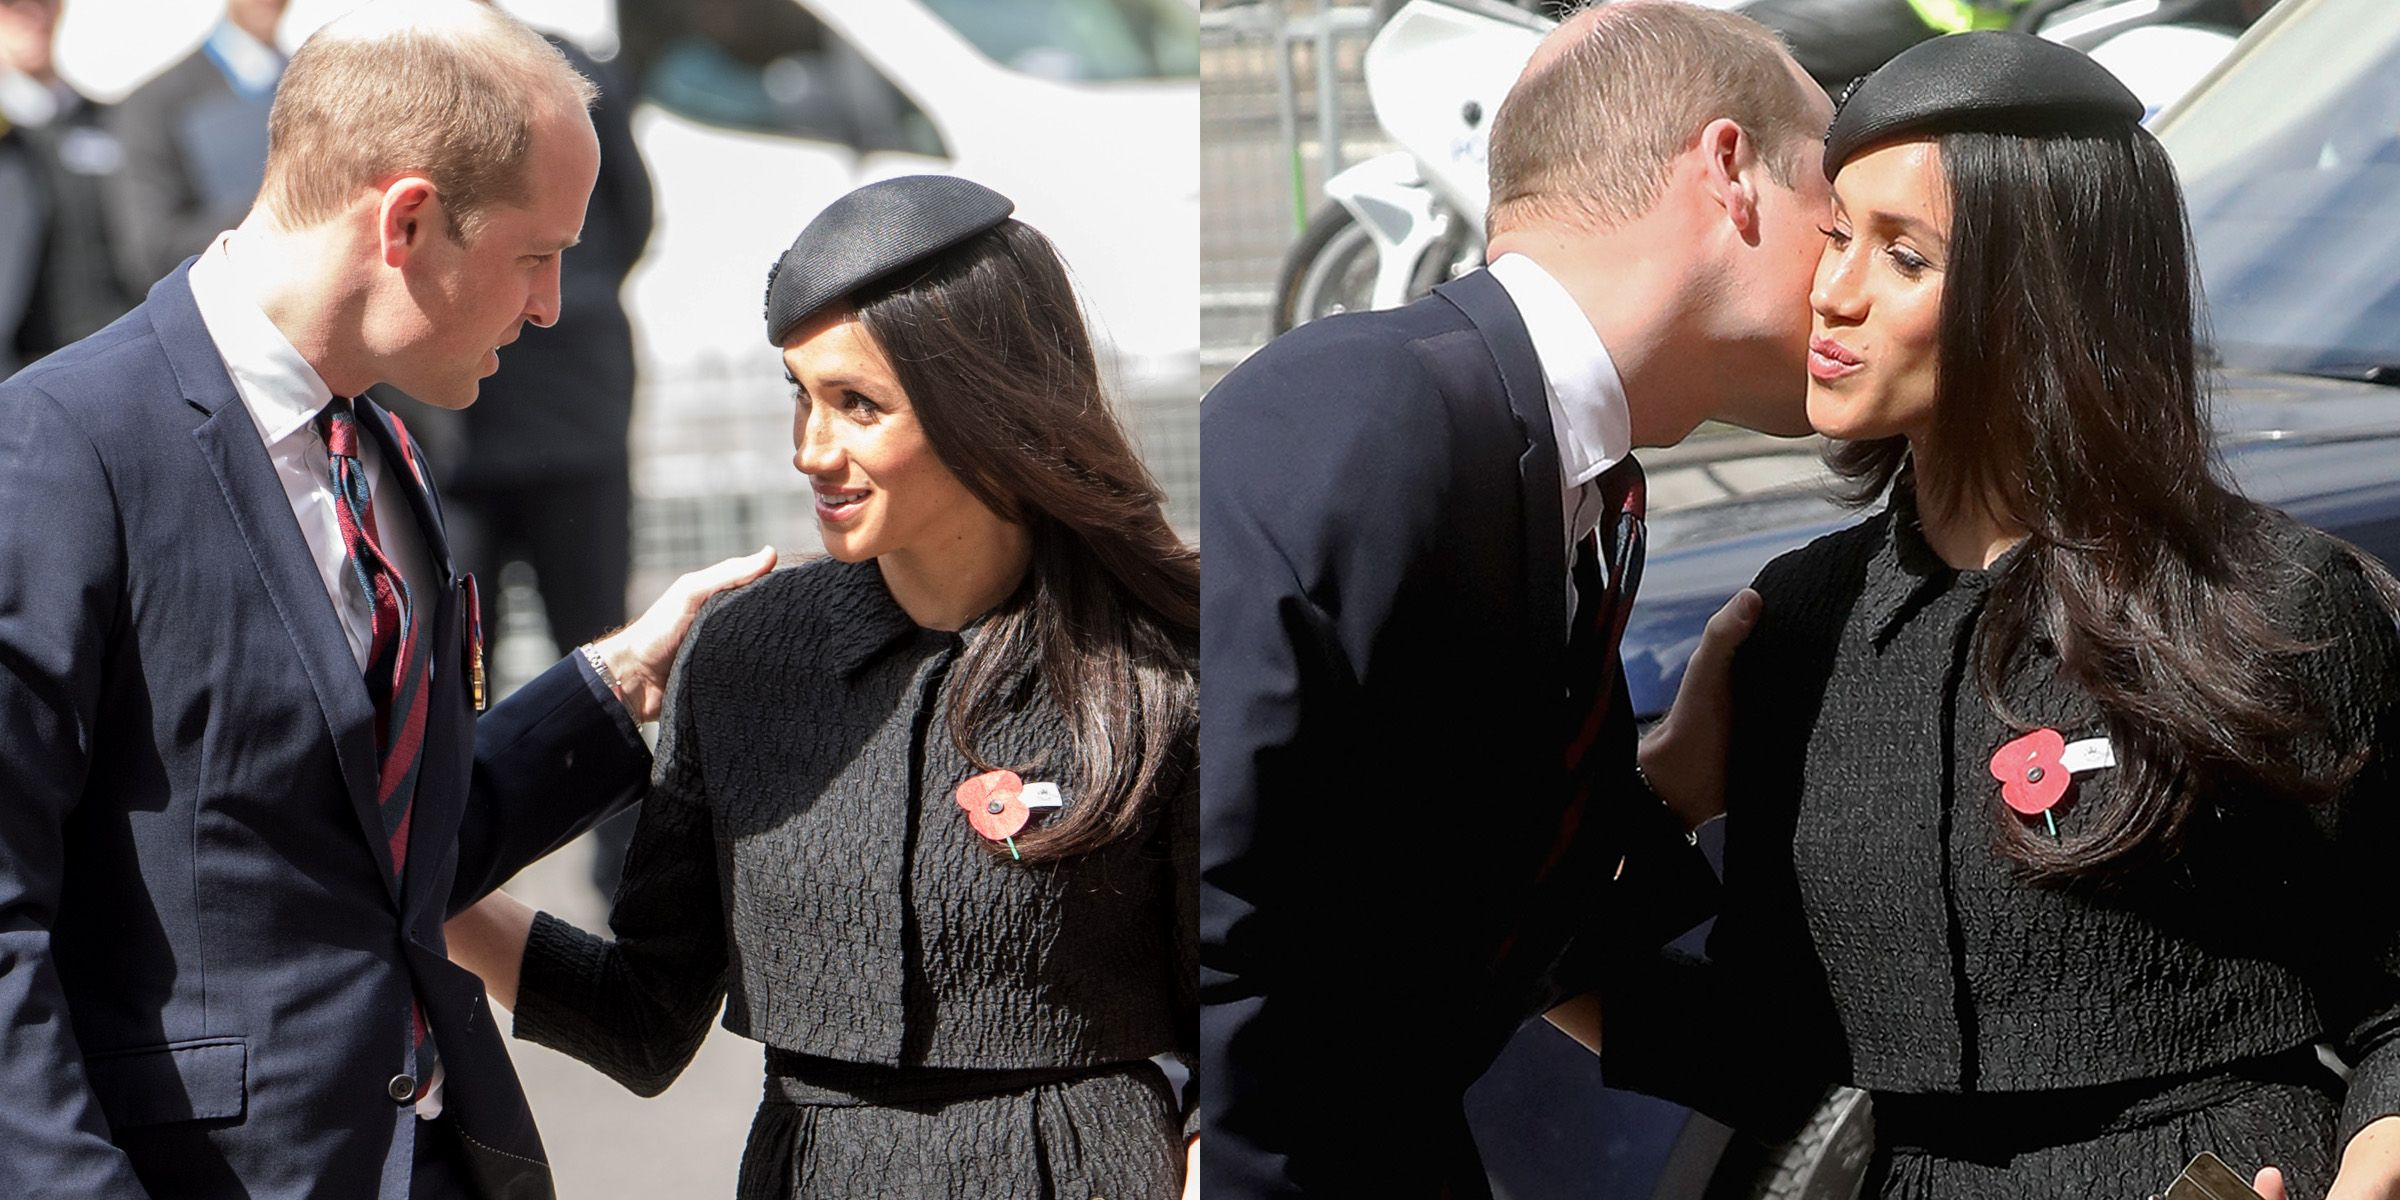 hbz-prince-william-meghan-markle-index-1524660455.jpg